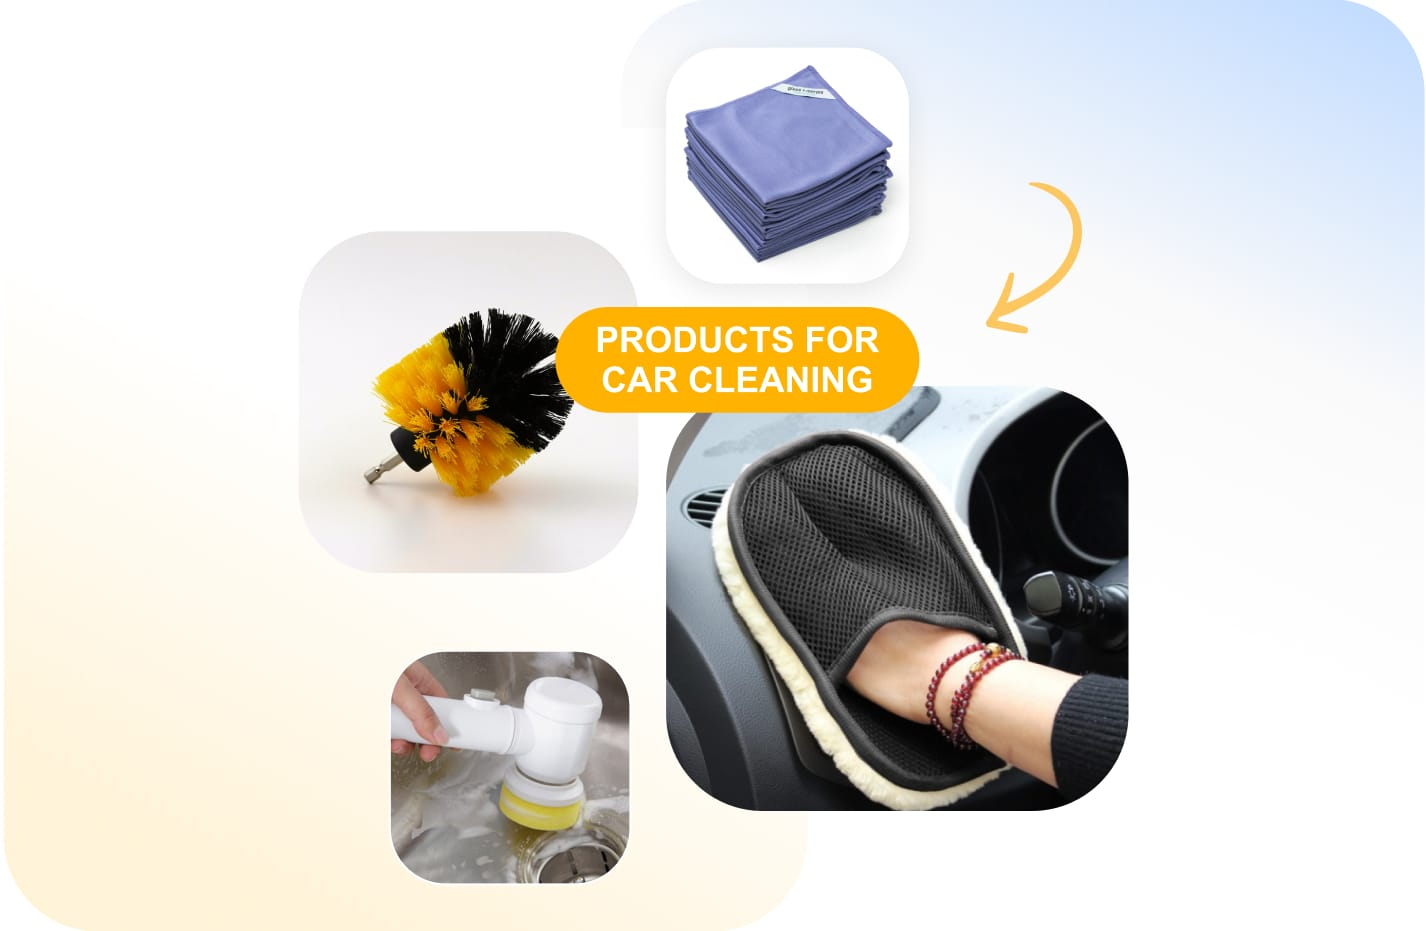 Car accessories business: Products for car cleaning that you can resell from Sellvia